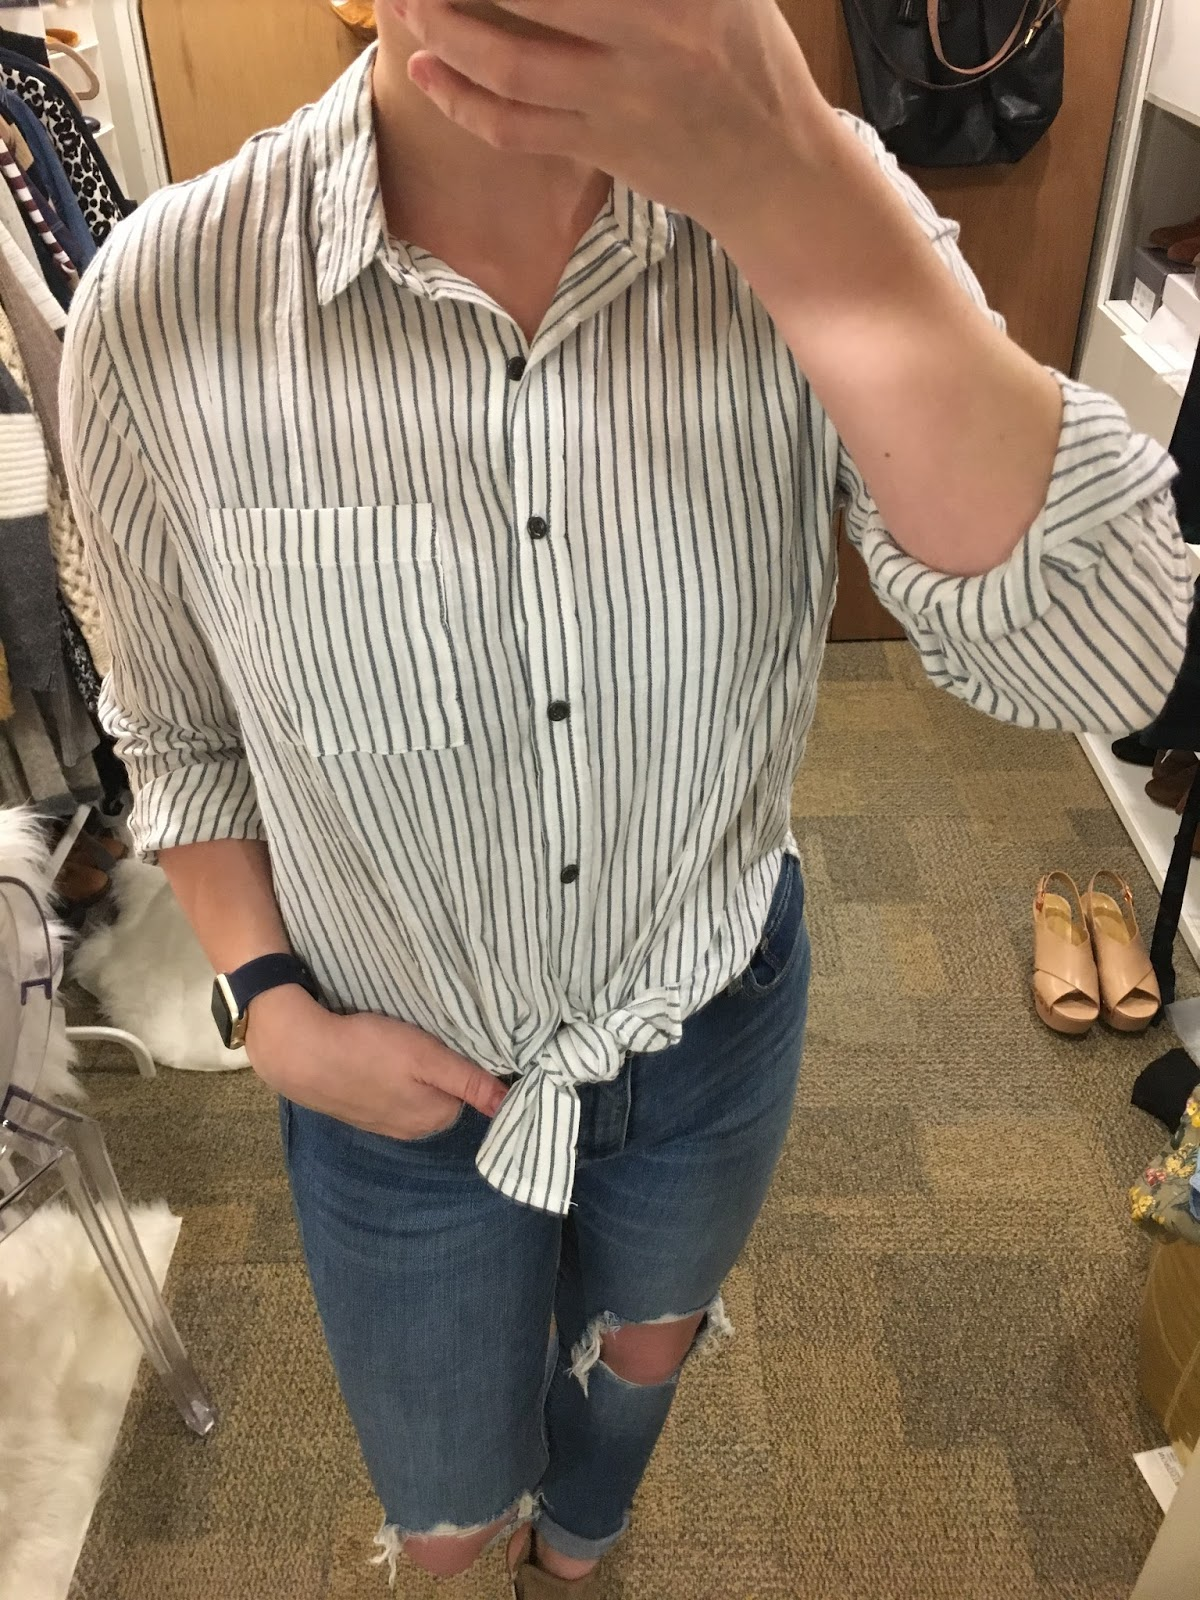 730887d569ad1c Shoes: 9.5 is my true size, but a size 10 fits the better in boots. Item: Universal  Thread Women's Tie Front Striped Long Sleeve Button Down Shirt ...